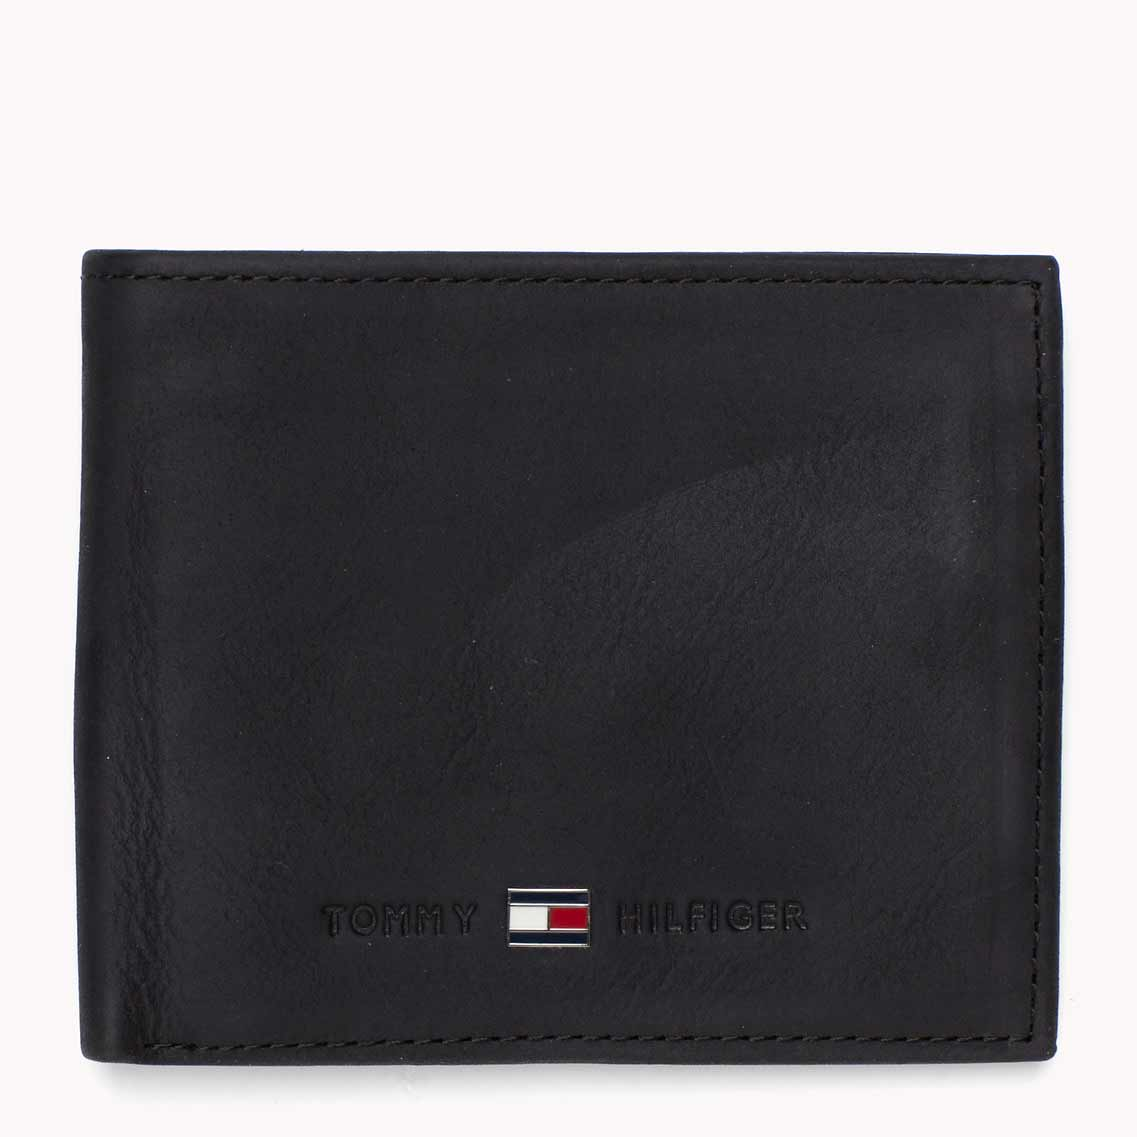 top 5 men's best wallet brands